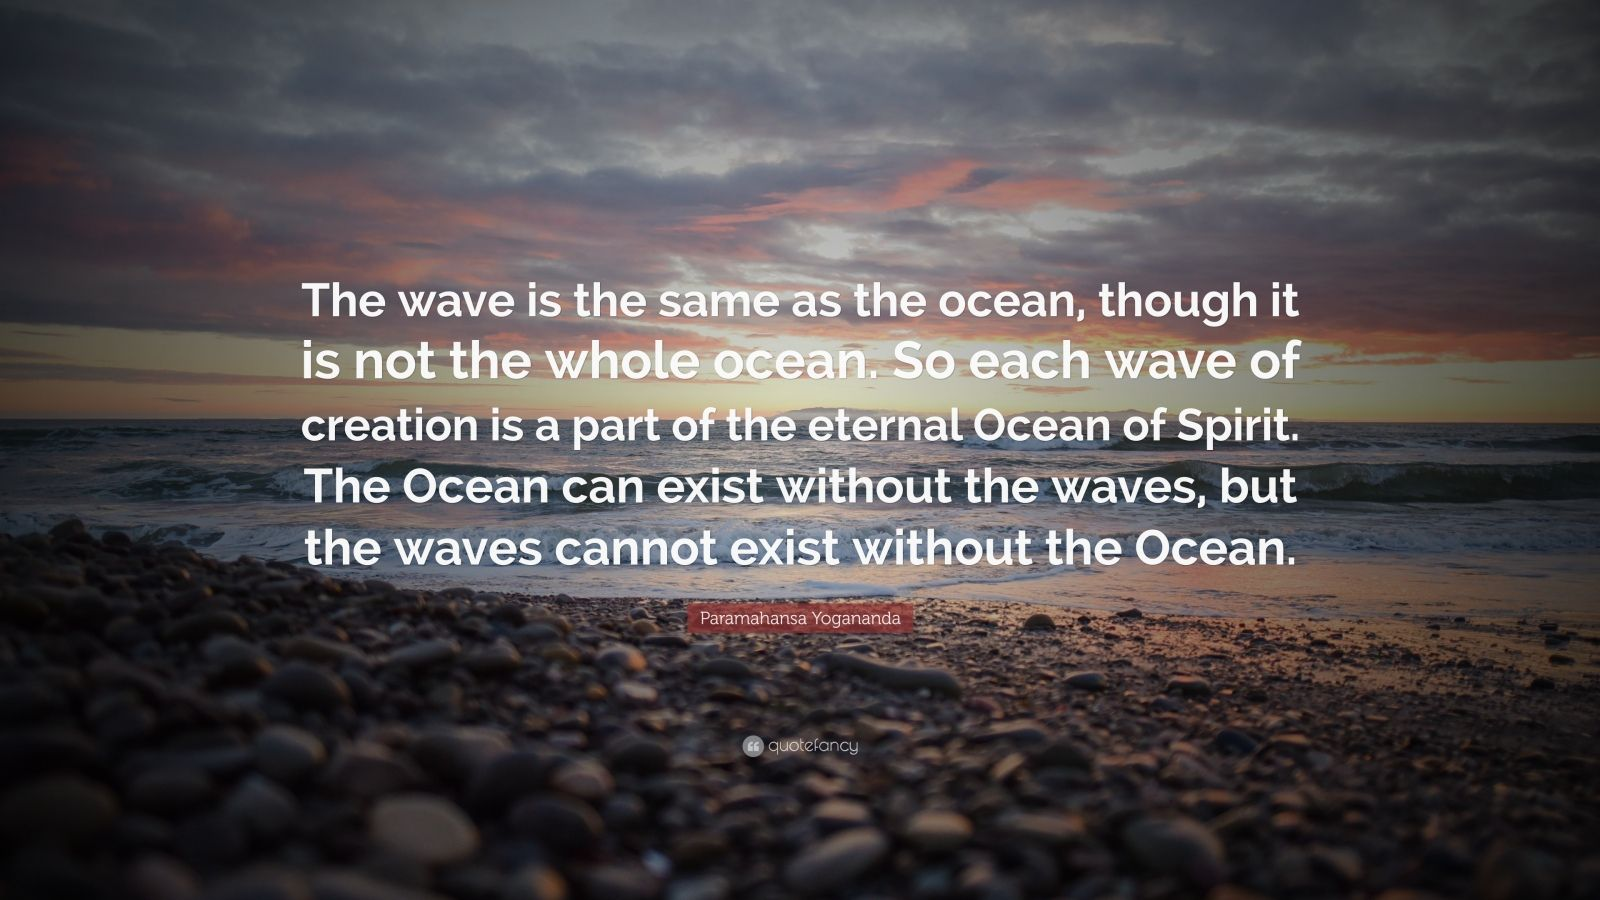 """Paramahansa Yogananda Quote: """"The wave is the same as the ocean, though it is not the whole ocean. So each wave of creation is a part of the eternal Ocean of Spirit. The Ocean can exist without the waves, but the waves cannot exist without the Ocean."""""""